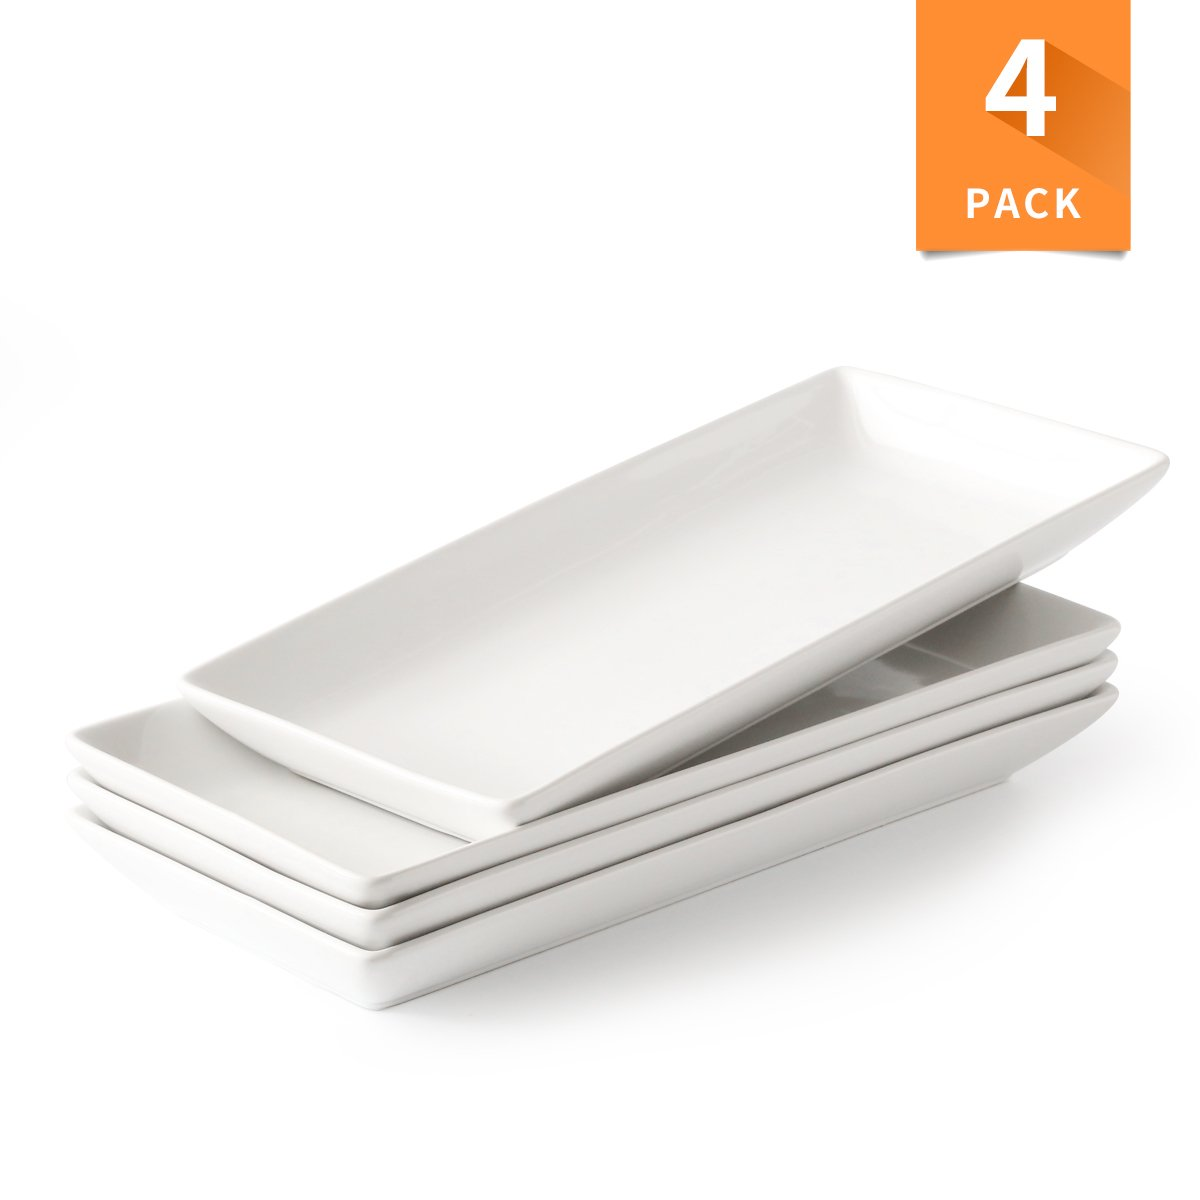 Porcelain Serving Platter Rectangular Plate/Tray for Party, 14-Inch Large White Microwave And Dishwasher Safe Set of 4 by LAUCHUH